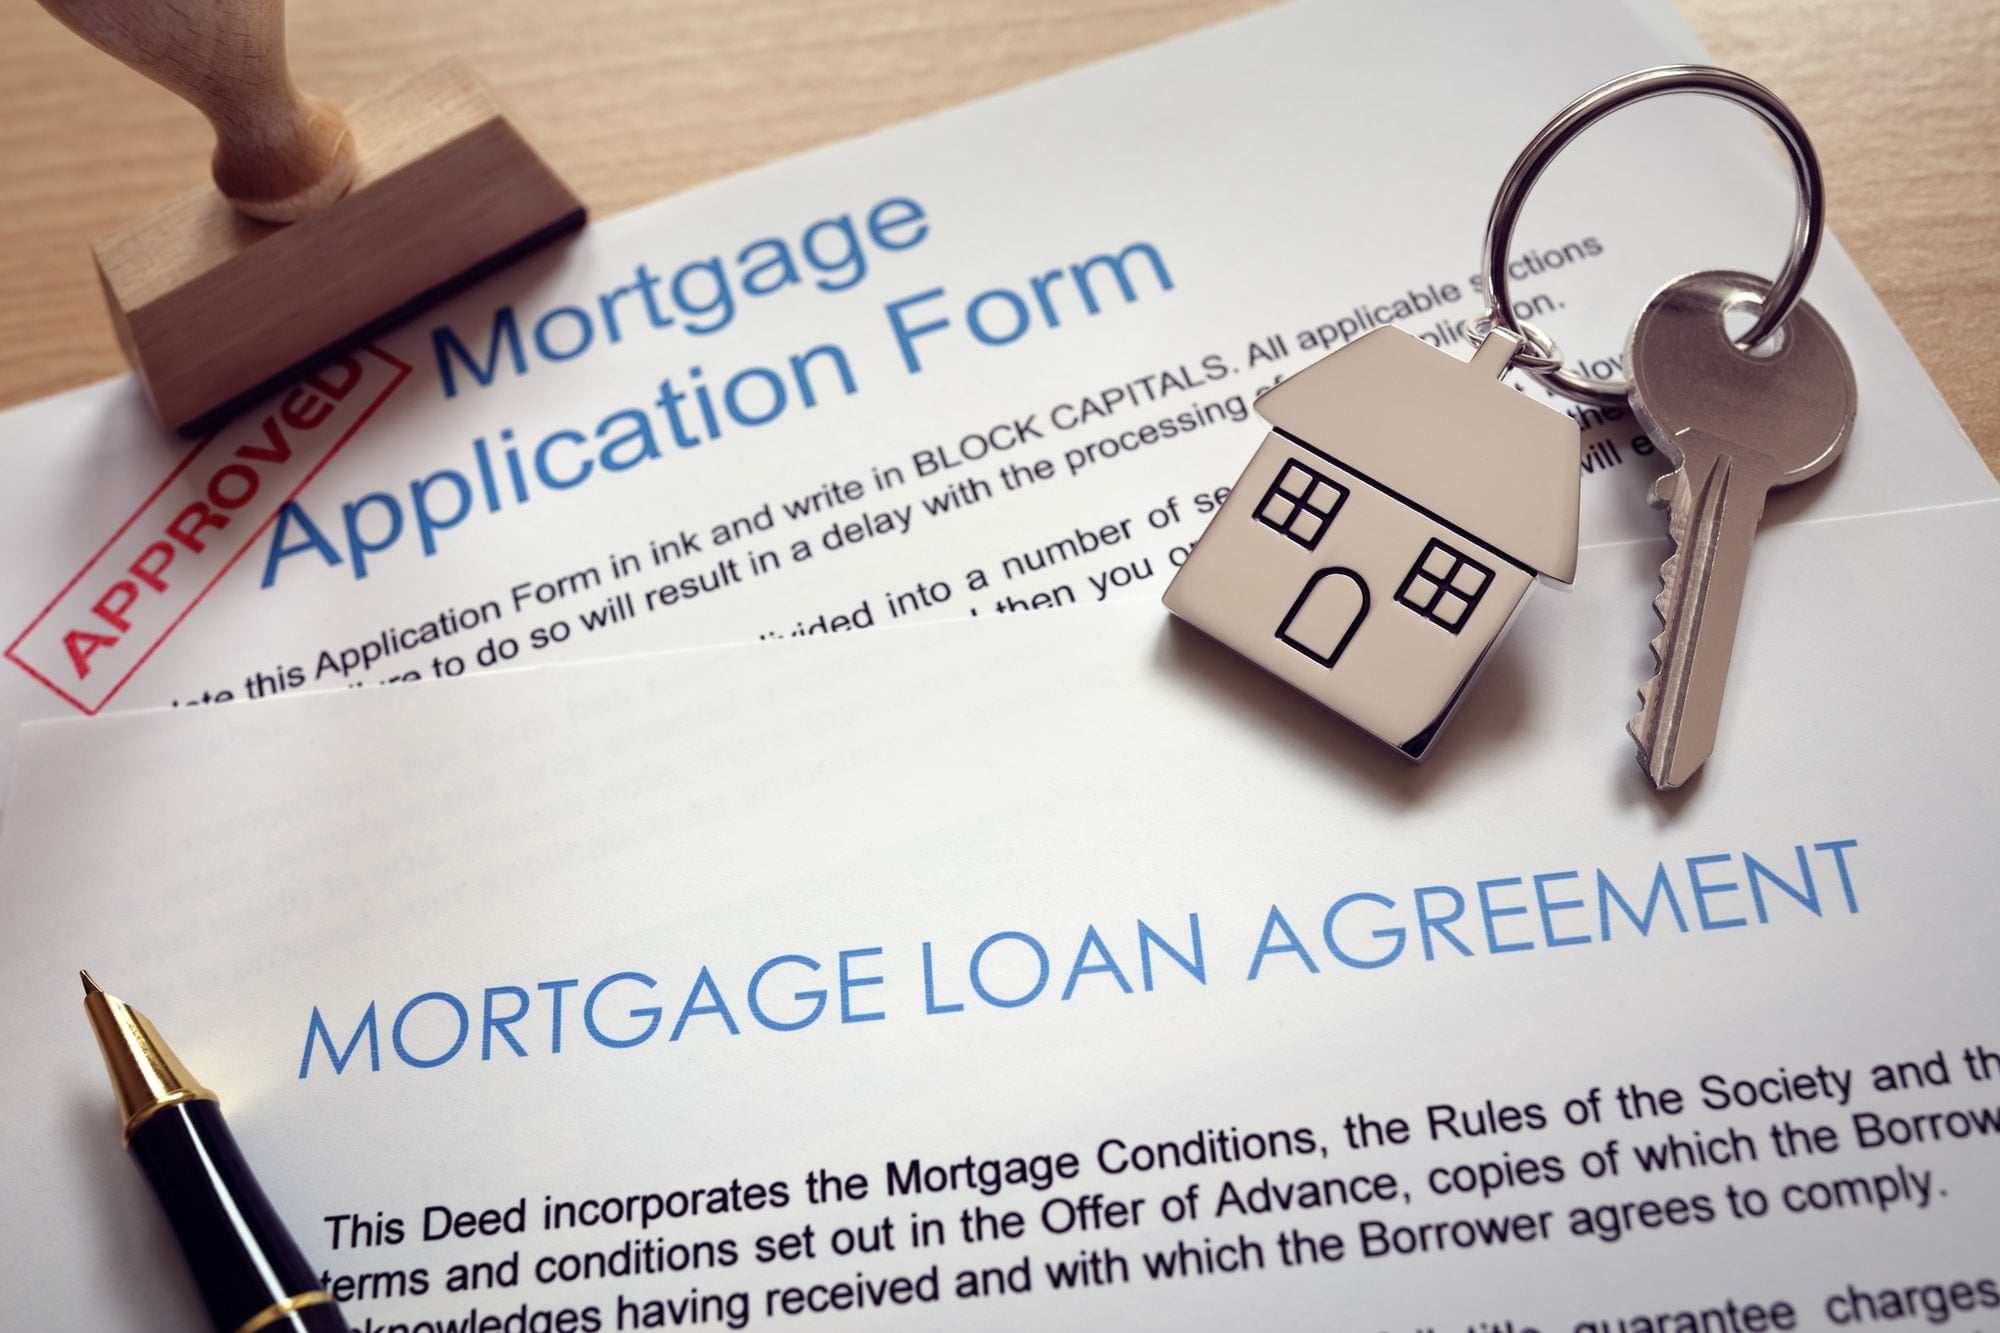 Mortgage Application Approved!